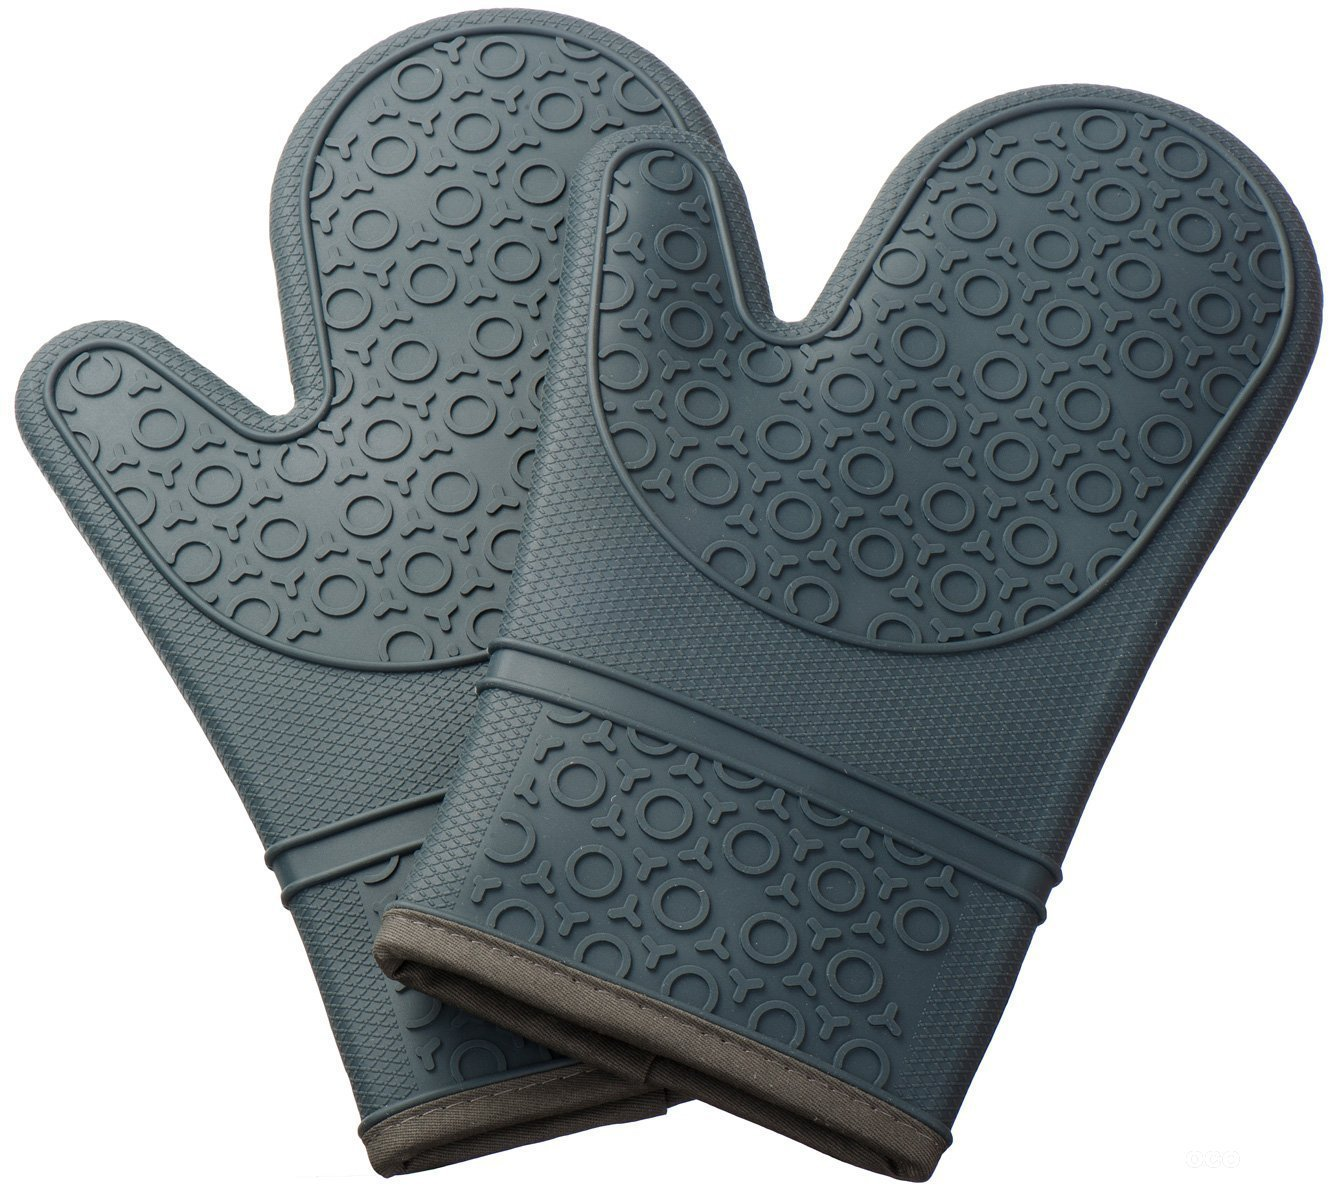 Turnonmyway Silicone Oven Glove with Non-slip Grip Grey 8XL